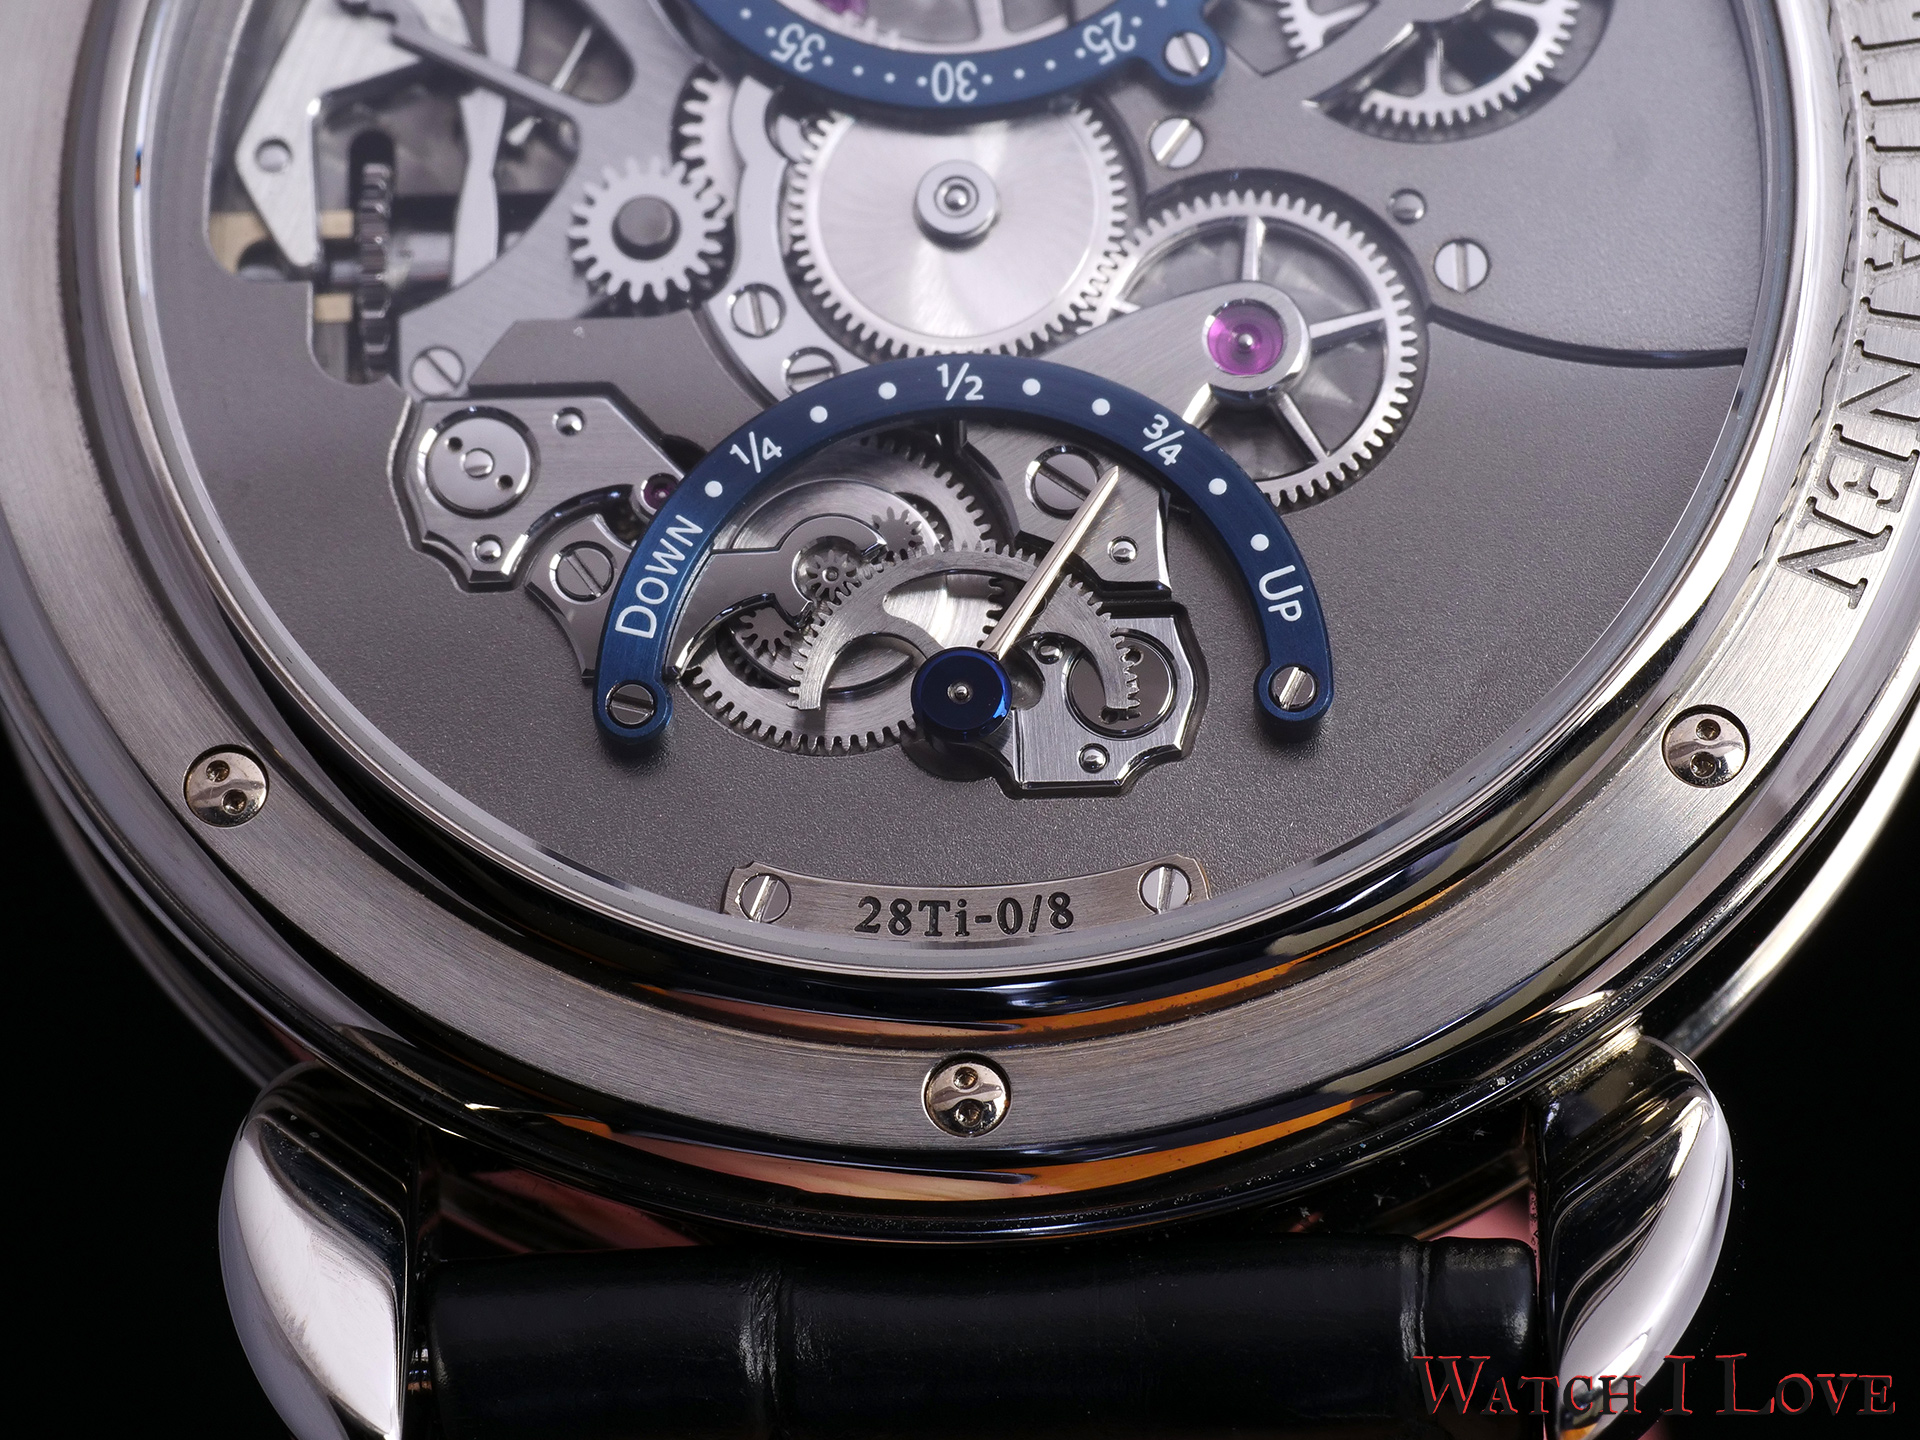 The power reserve indication visible on the back of the Voutilainen 28ti